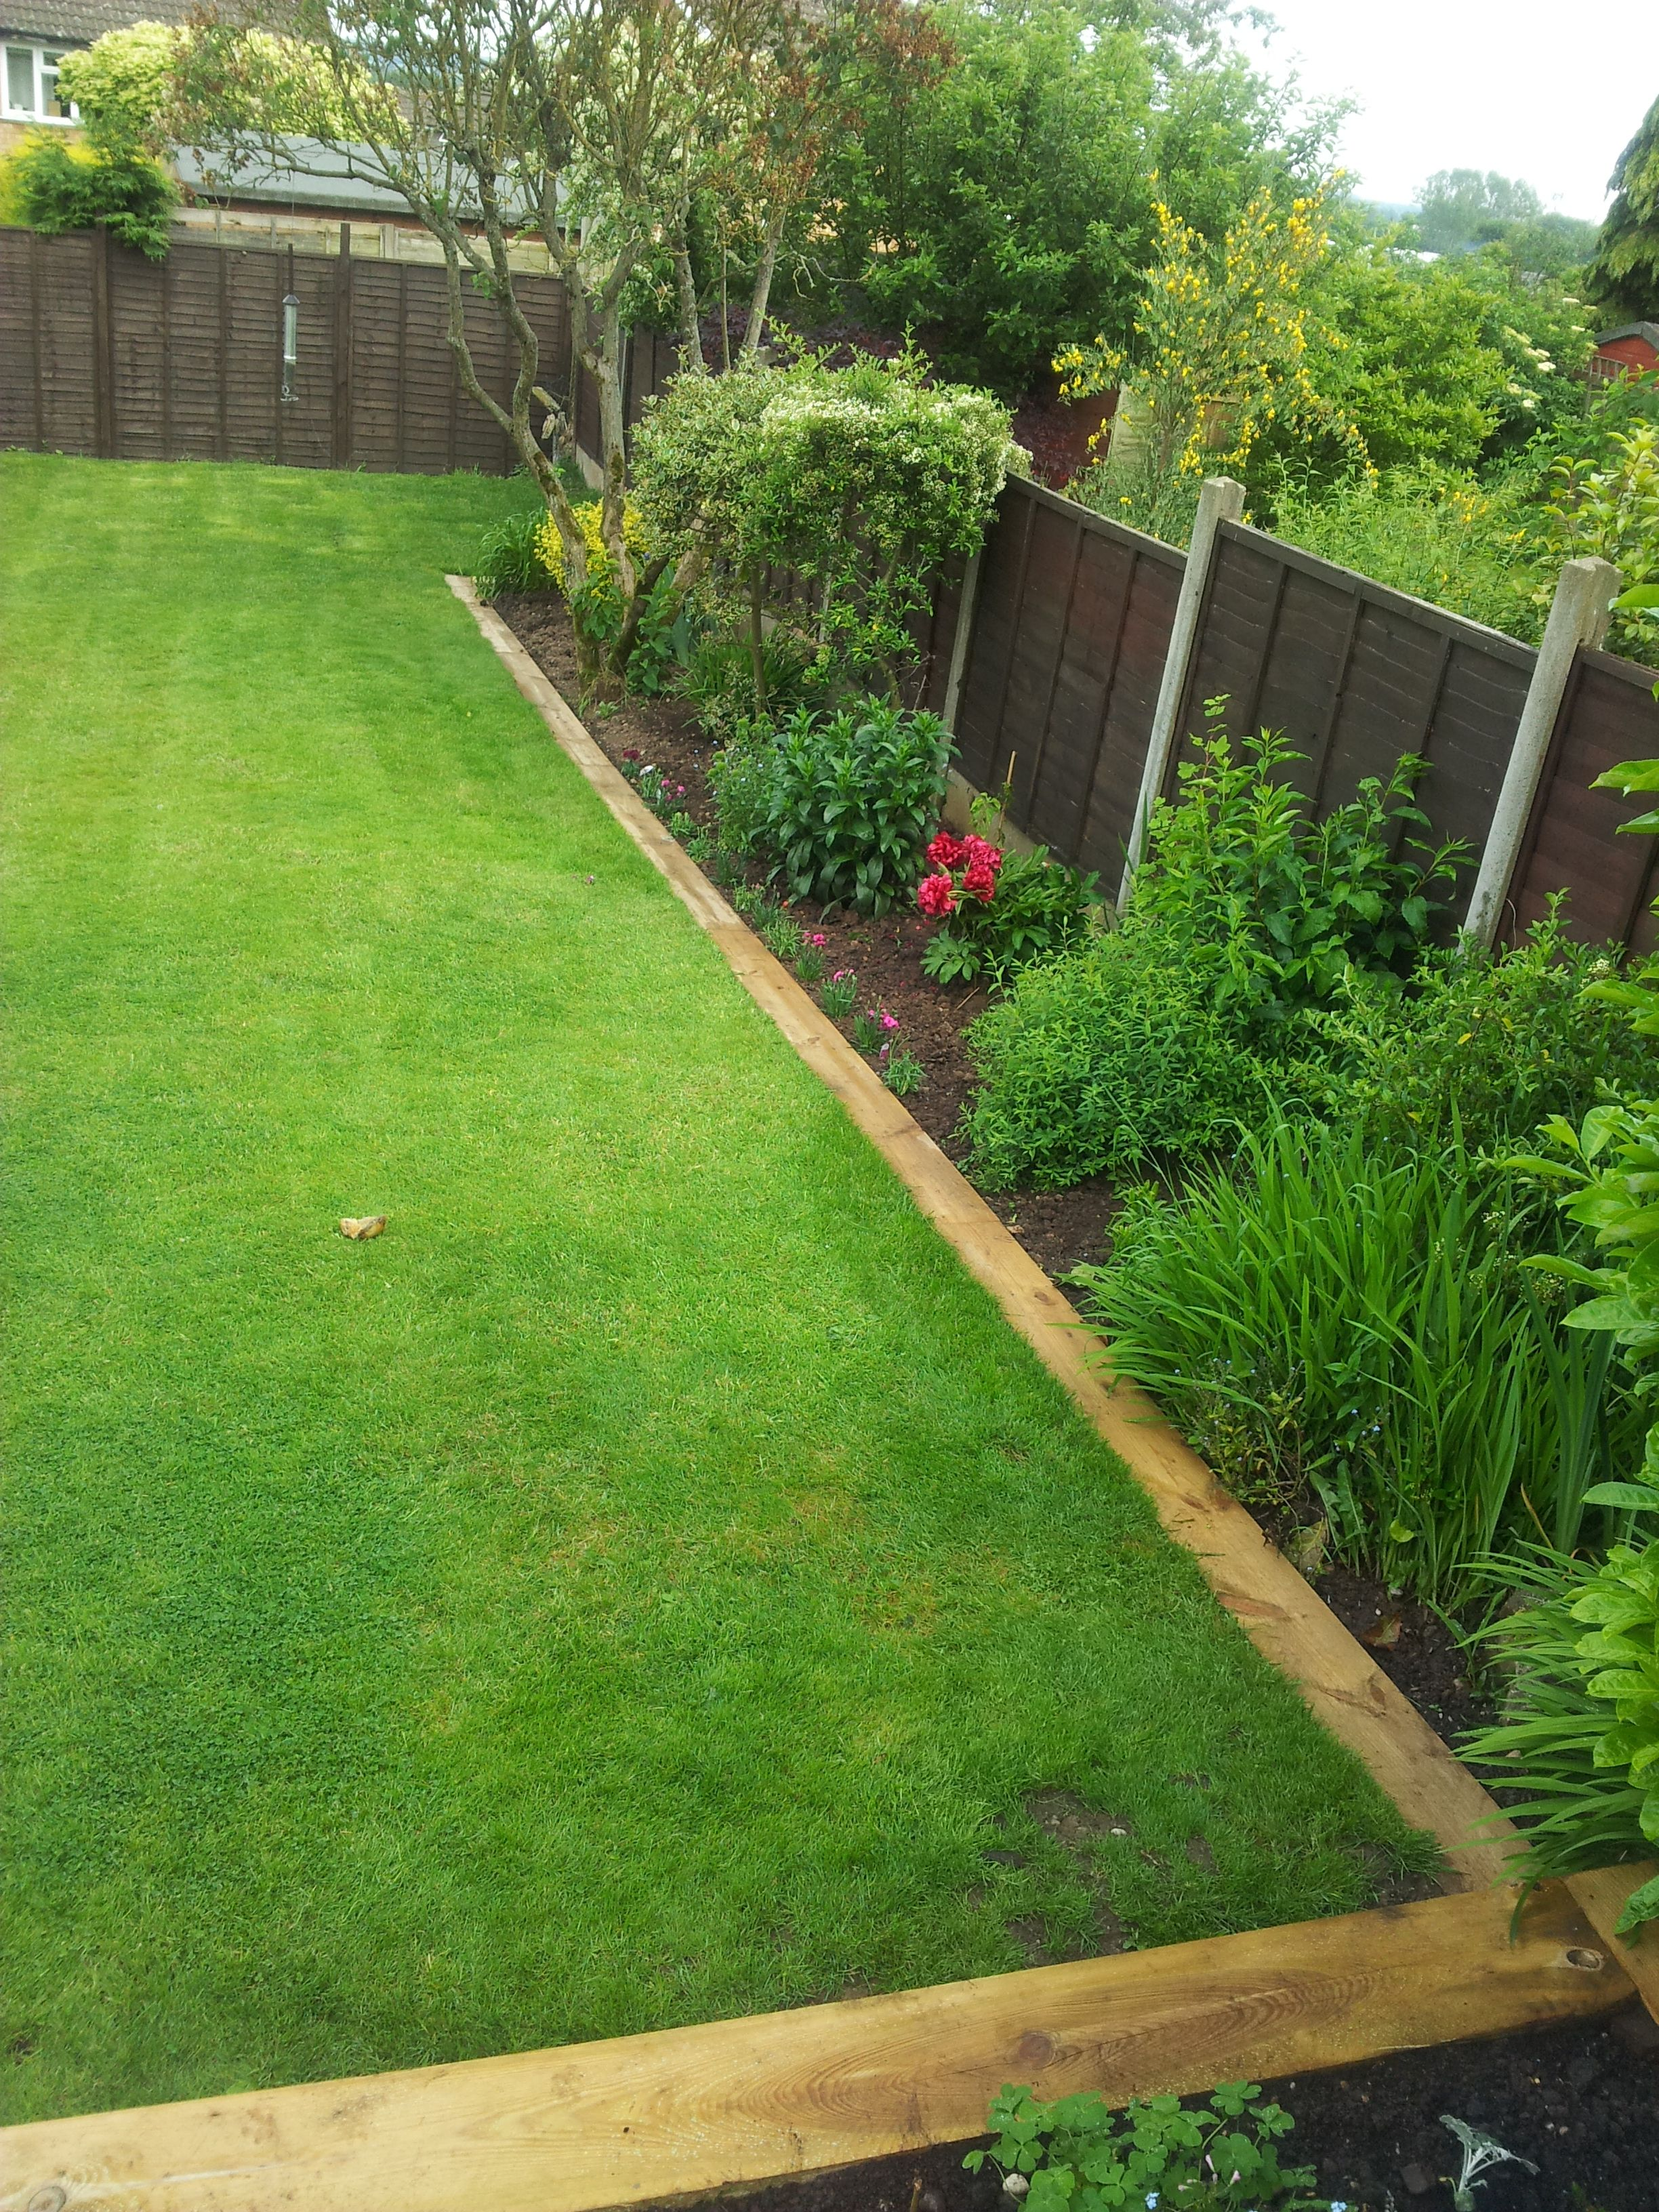 Photo of Our garden now with railway sleepers, really pleased